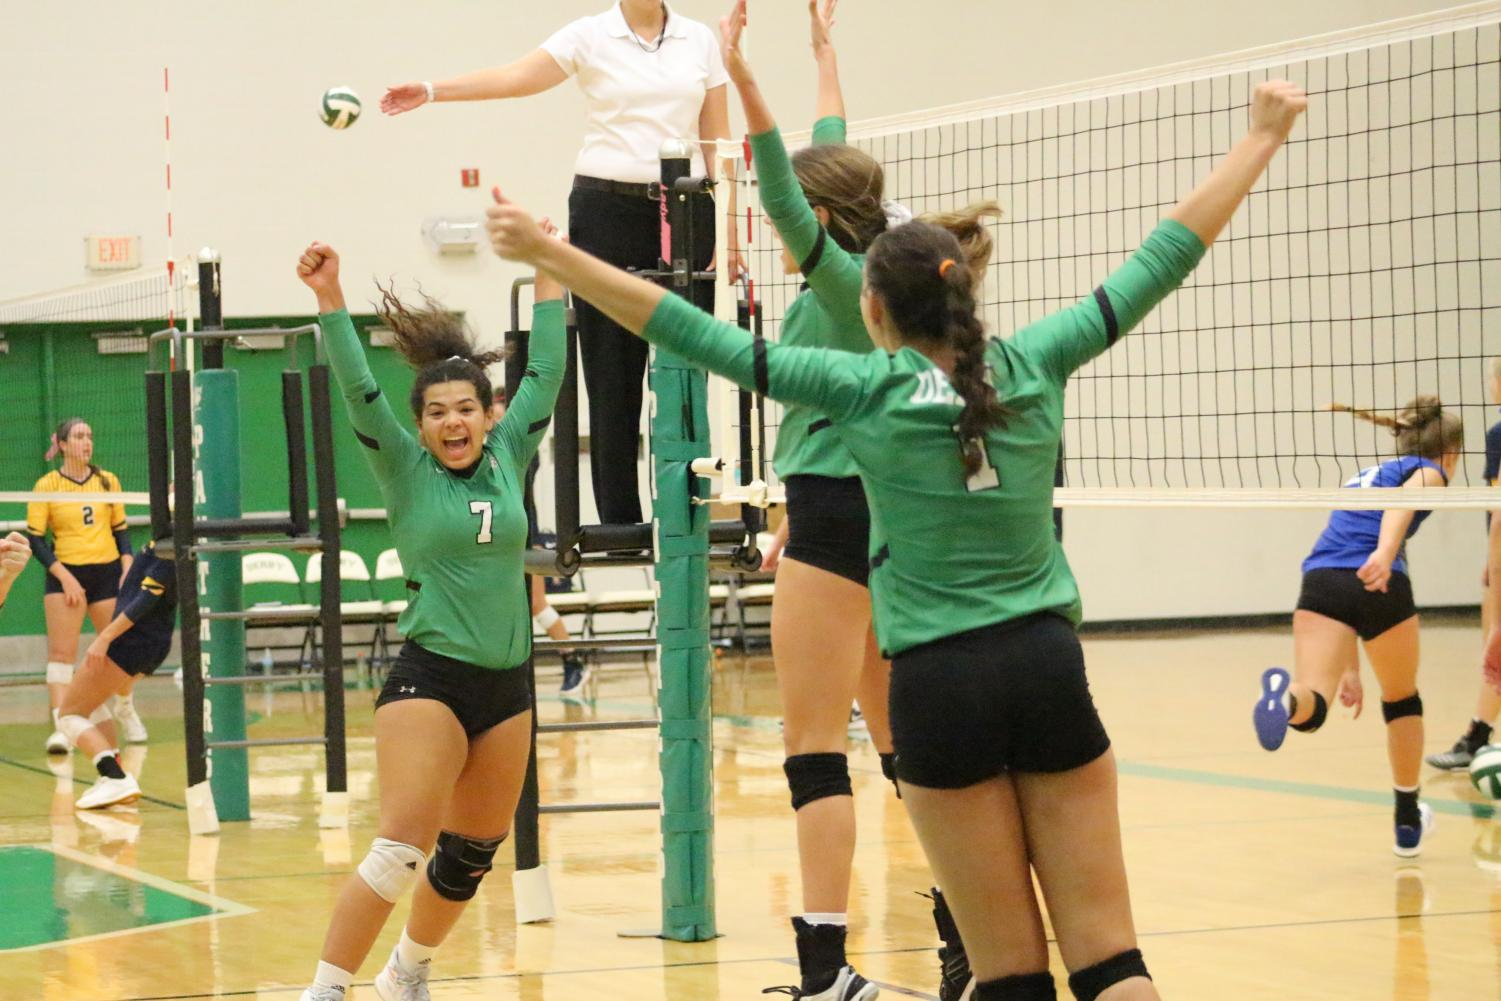 Senior Jalen Keener (left), junior Lexi Pitts (middle) and senior Sydney Nilles (right) celebrate the winning point  in the first set against Washburn Rural